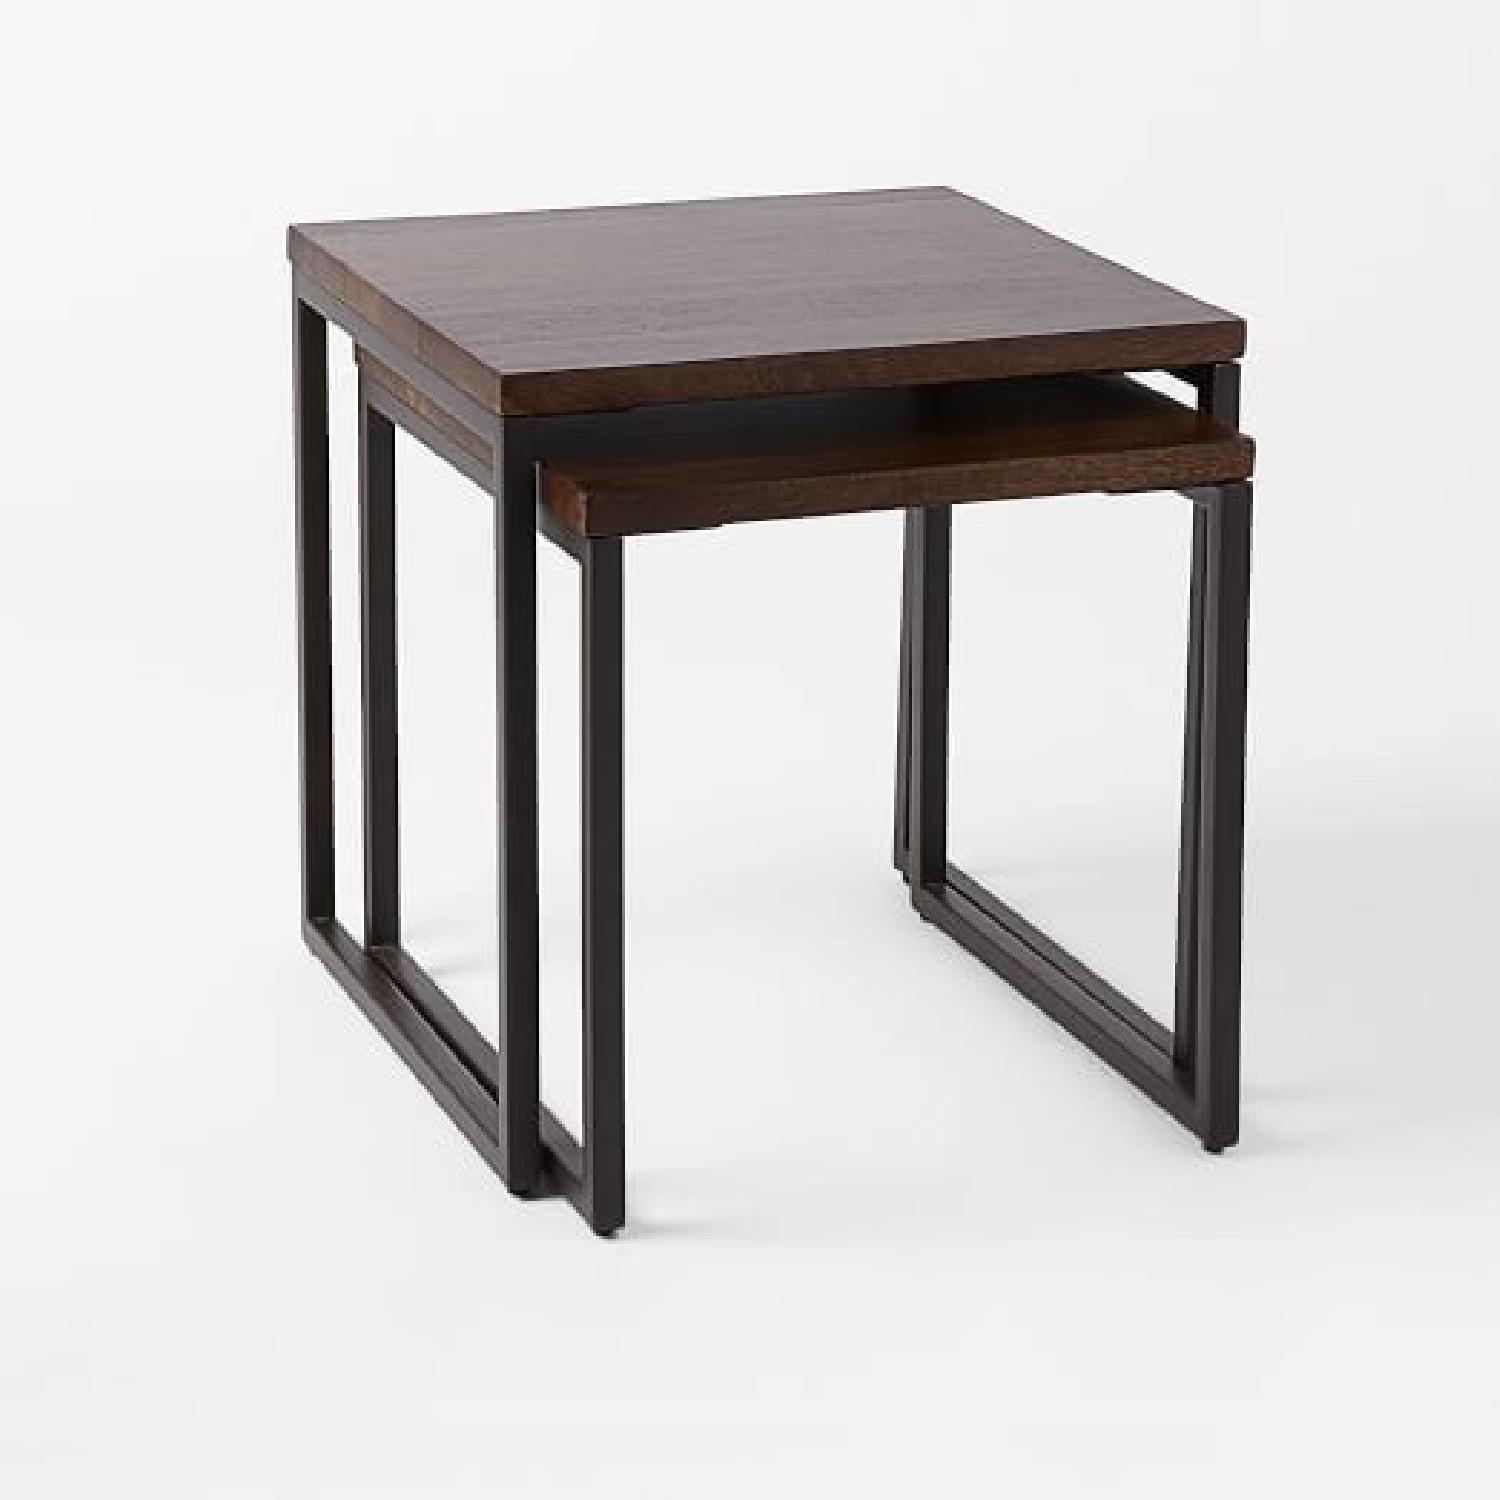 West Elm Box Frame Nesting Tables w/ Wood Top - image-4